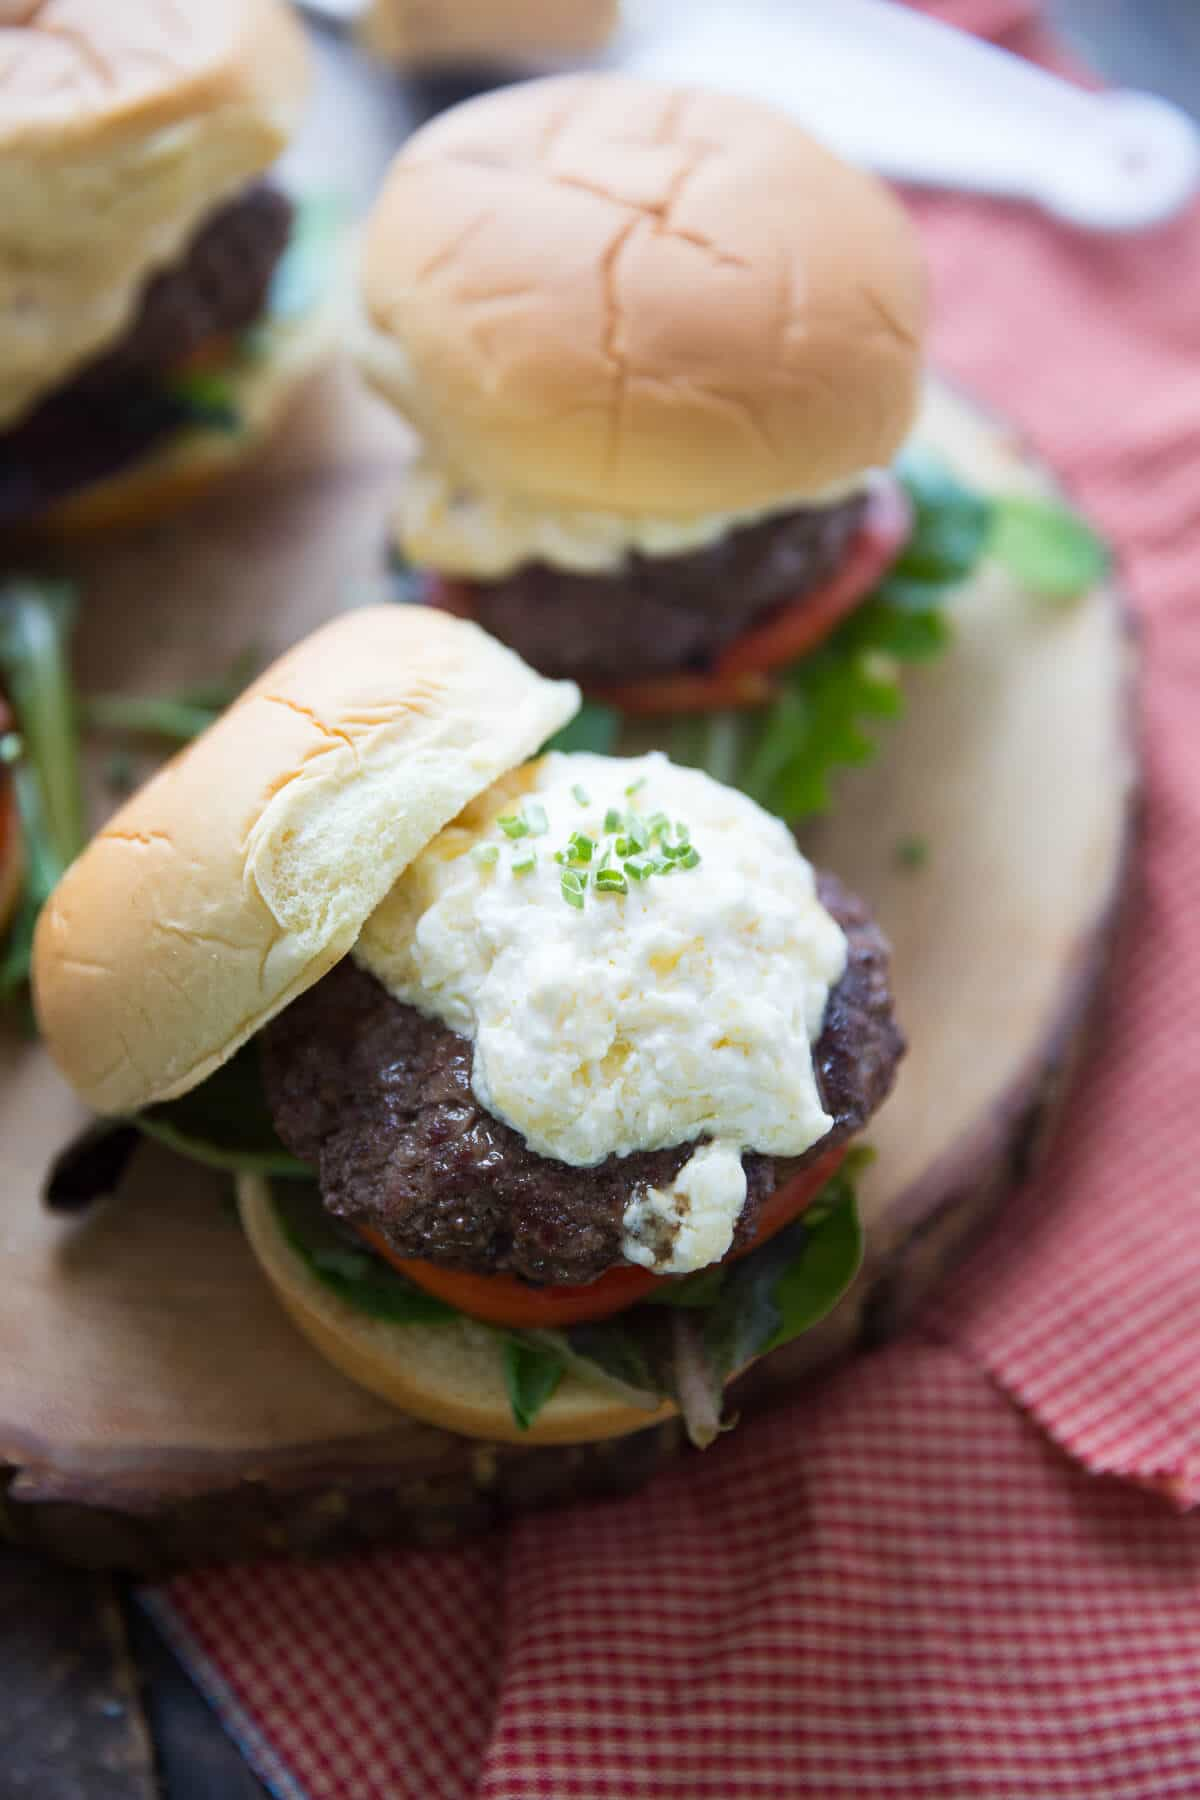 Horseradish cheddar burgers have a unique flavor but the juicy burger is irresistible!